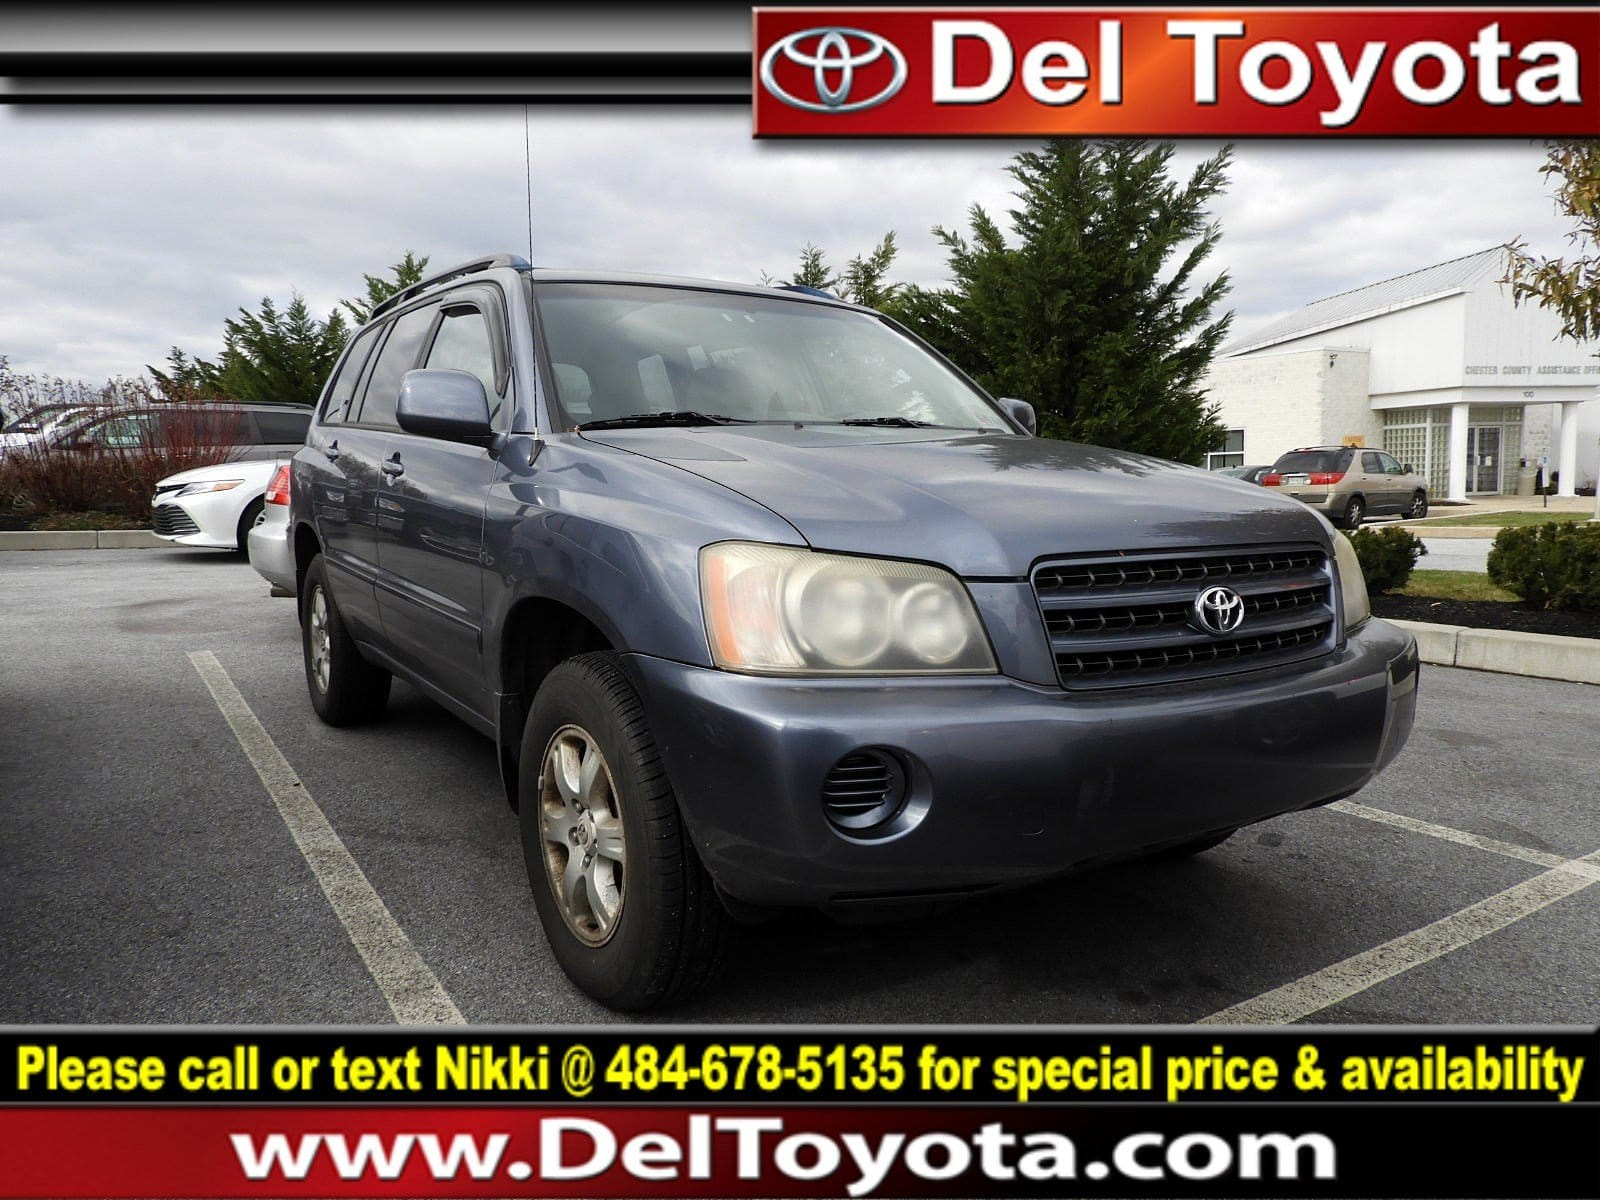 Photo Used 2003 Toyota Highlander For Sale in Thorndale, PA  Near West Chester, Malvern, Coatesville,  Downingtown, PA  VIN JTEHF21A730155150